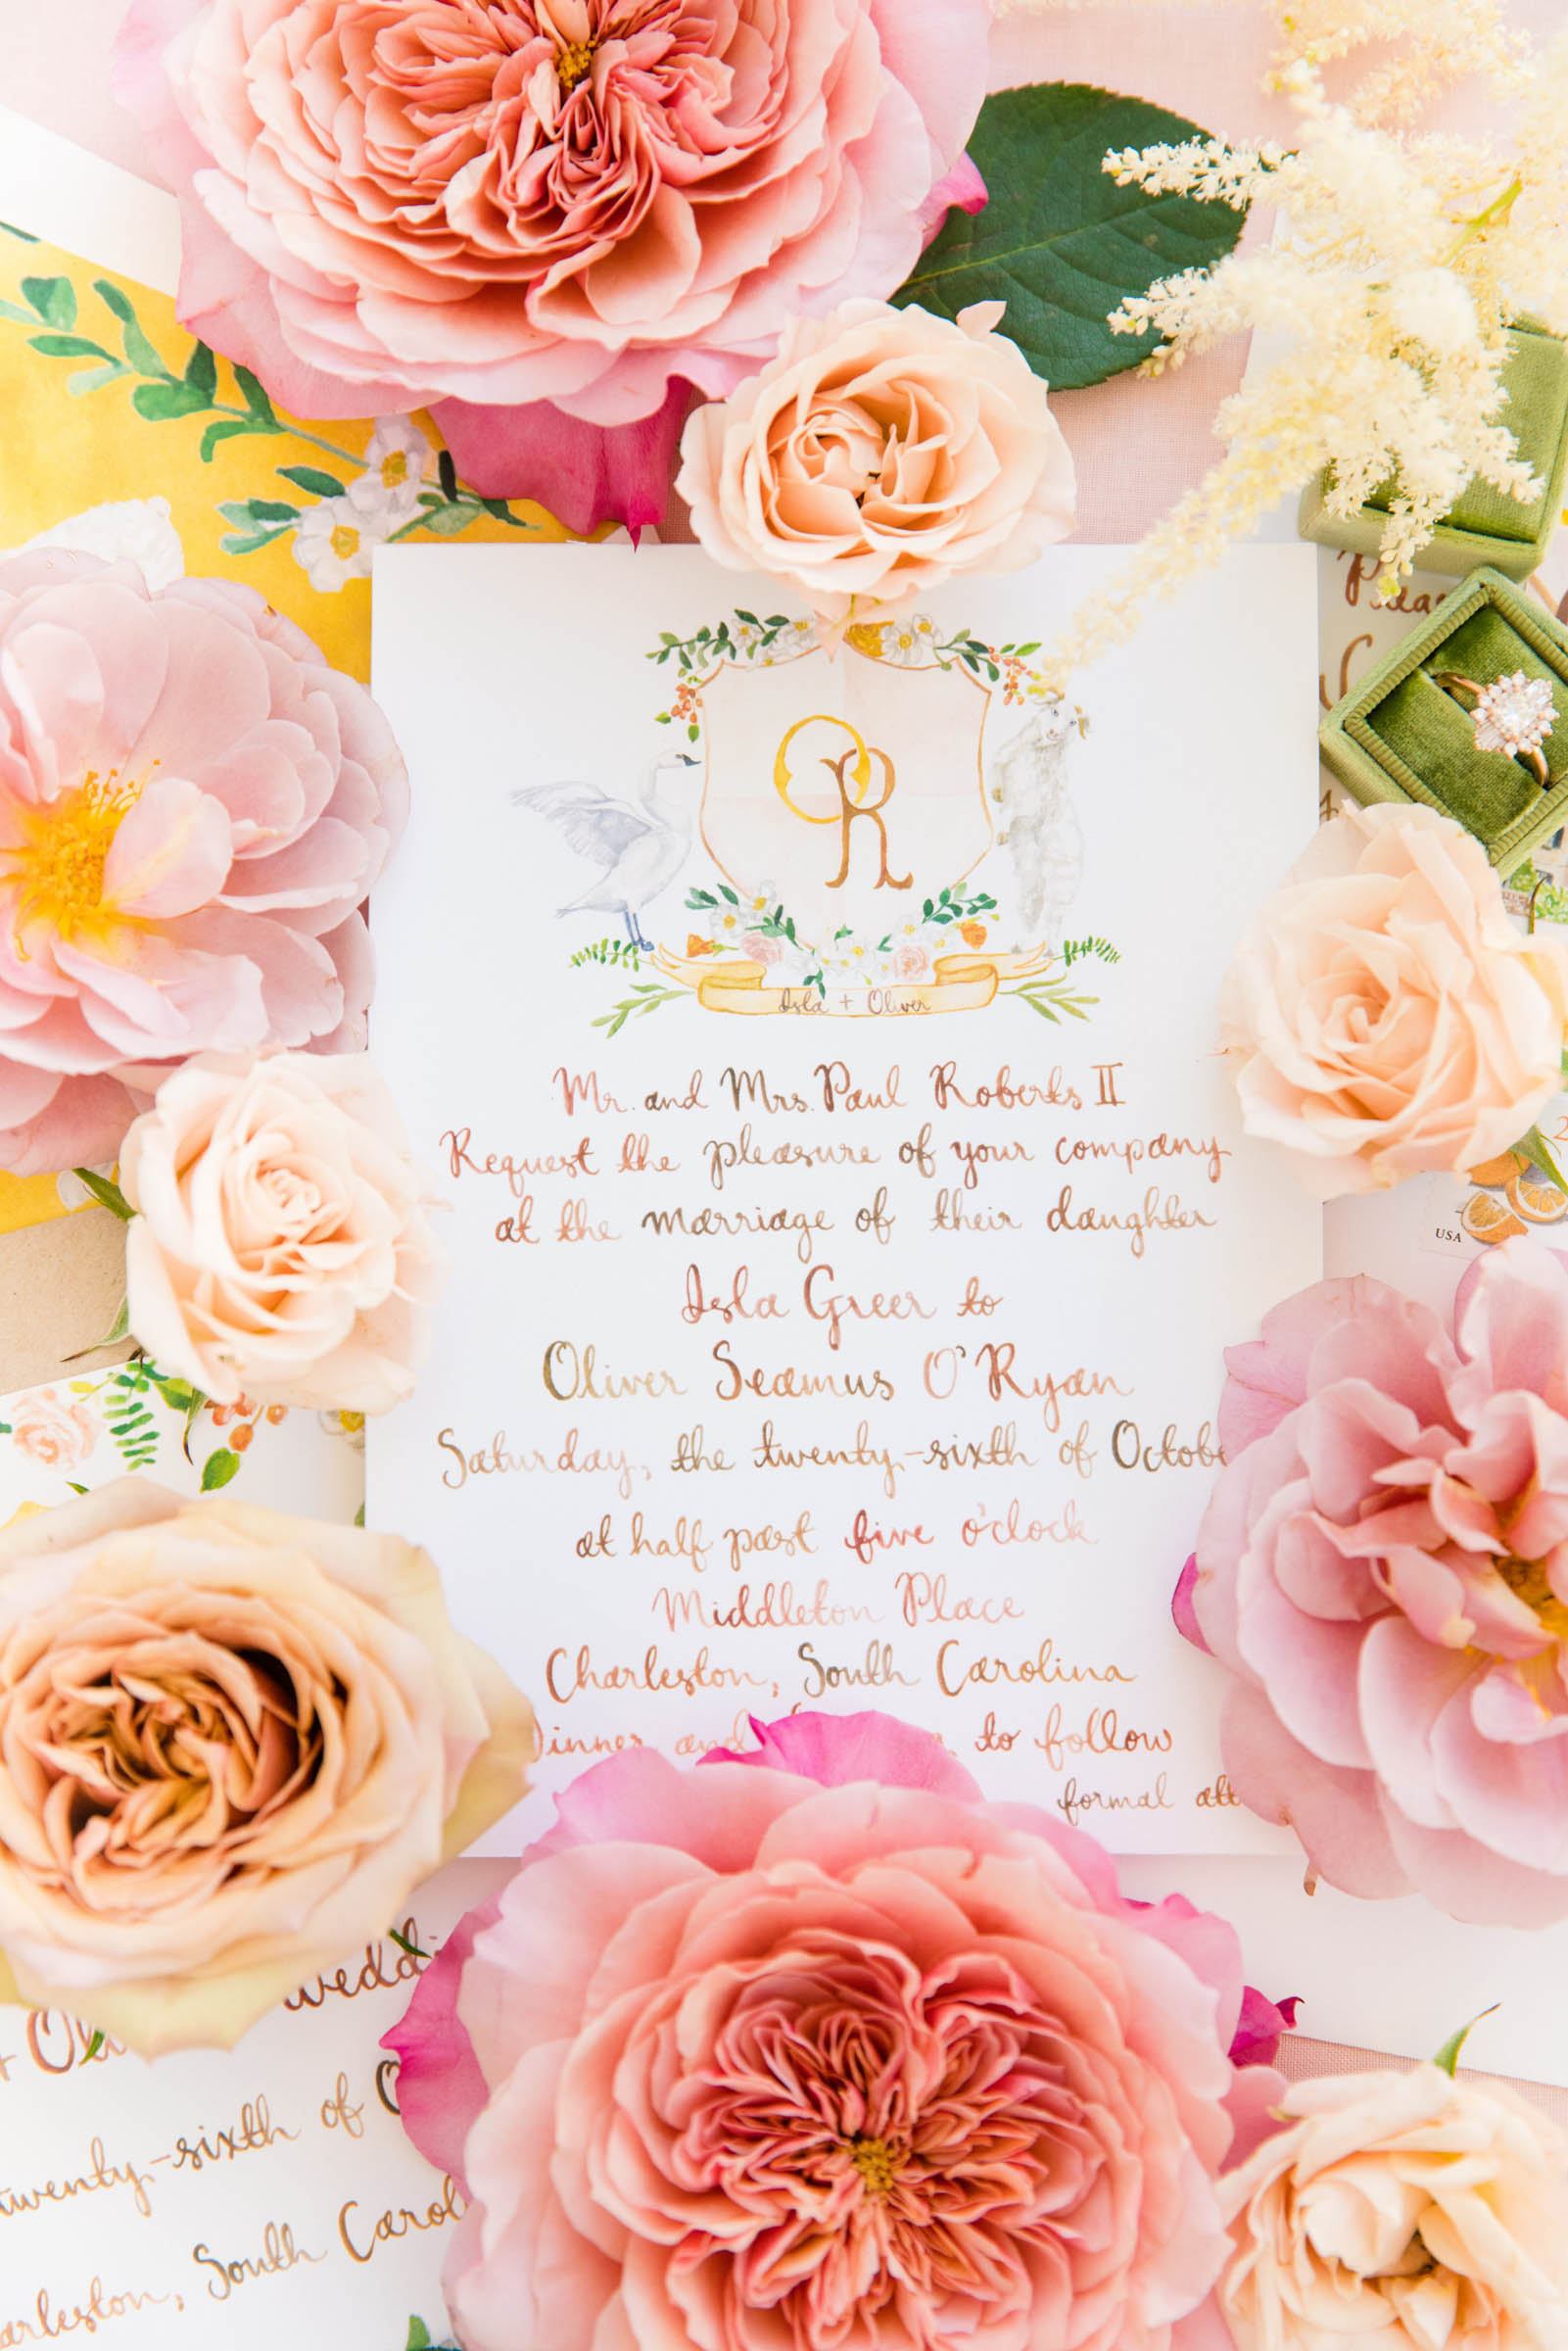 invitation amidst roses - photo by Dana Cubbage Weddings